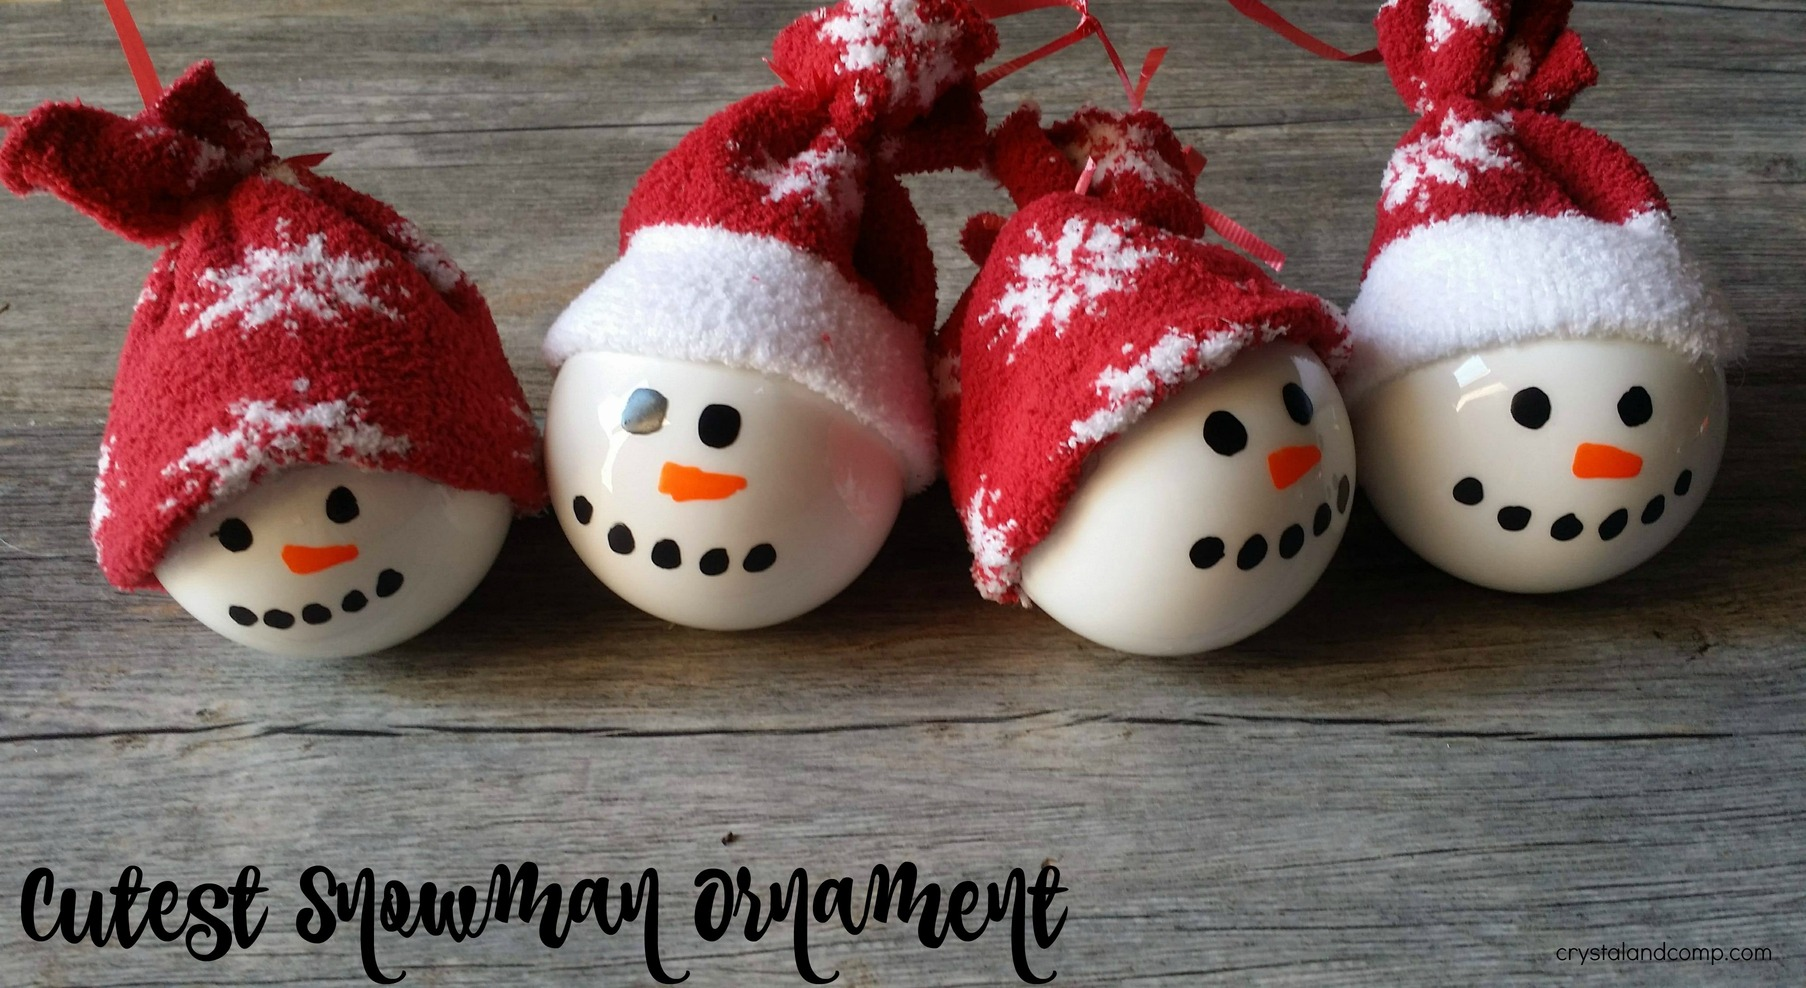 The Cutest Homemade Snowman Ornaments Ever